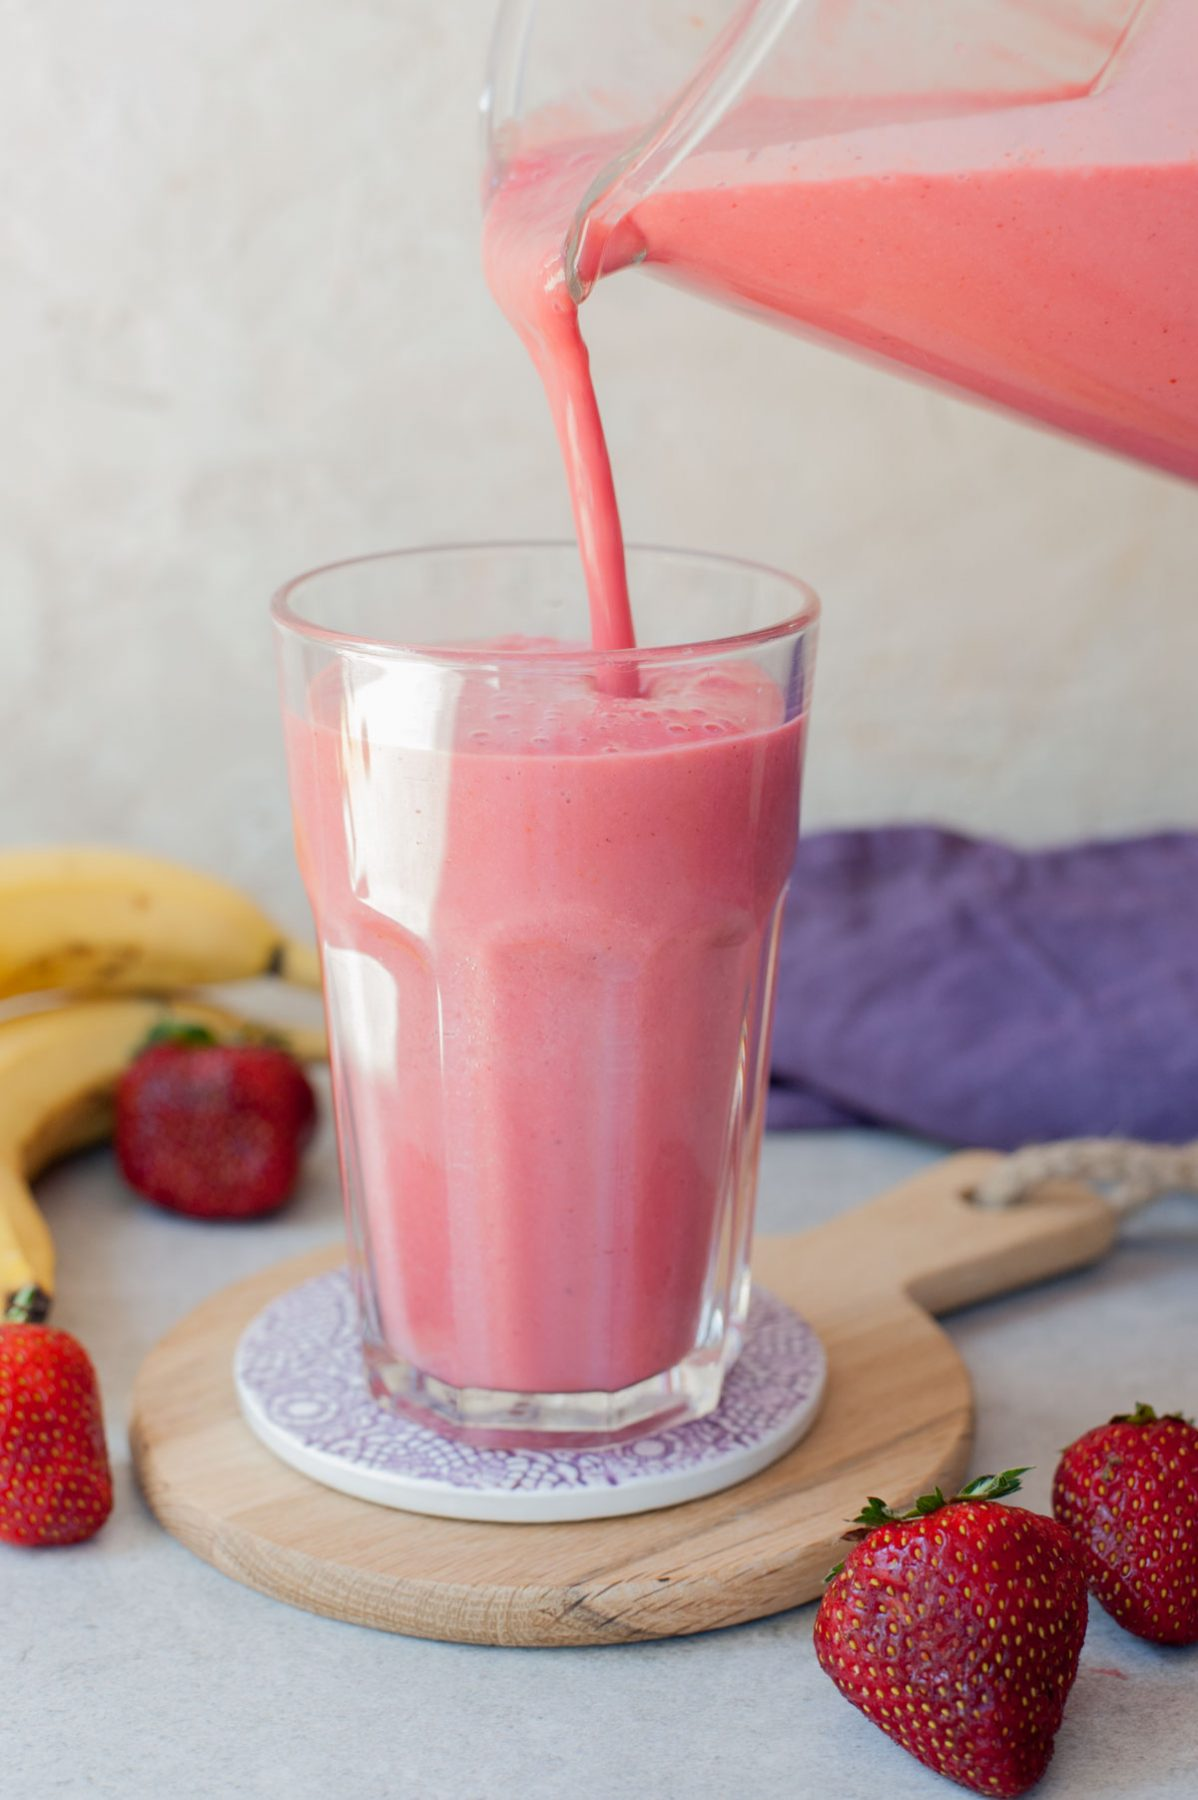 strawberry banana milkshake is being poured from a blender container to a high glass